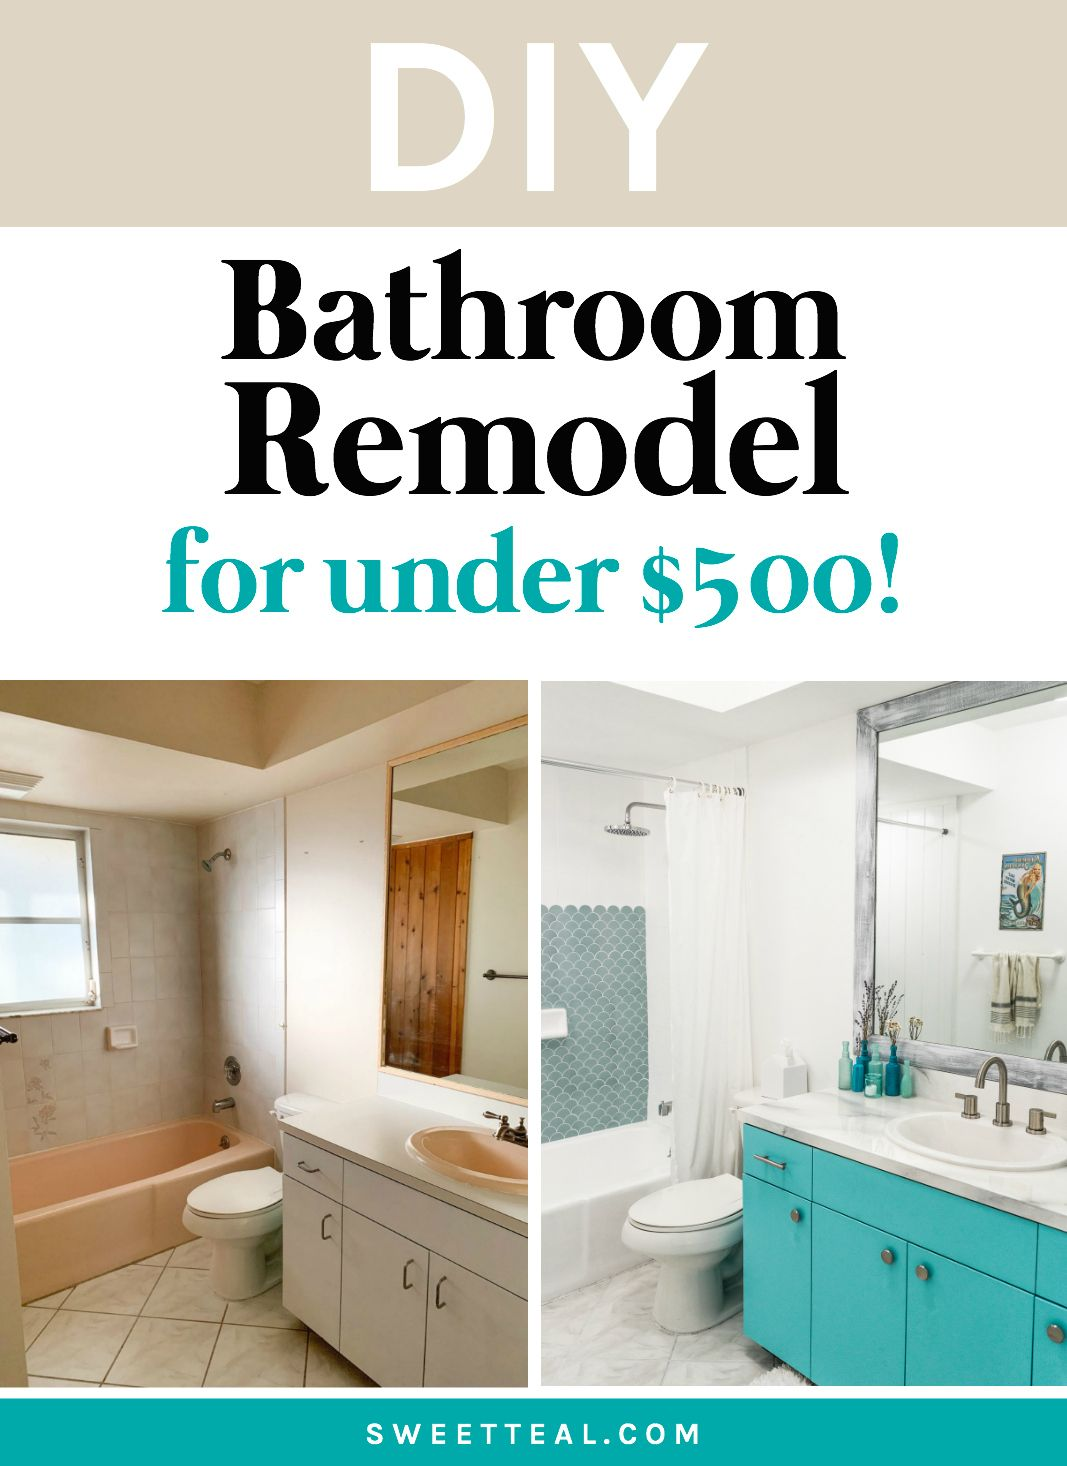 DIY Bathroom Remodel Under $500 | Coastal Bathroom Decor |Sweet Teal | Cheap Bathroom Remodel, Diy Bathroom Remodel, Bathroom Renovation Diy